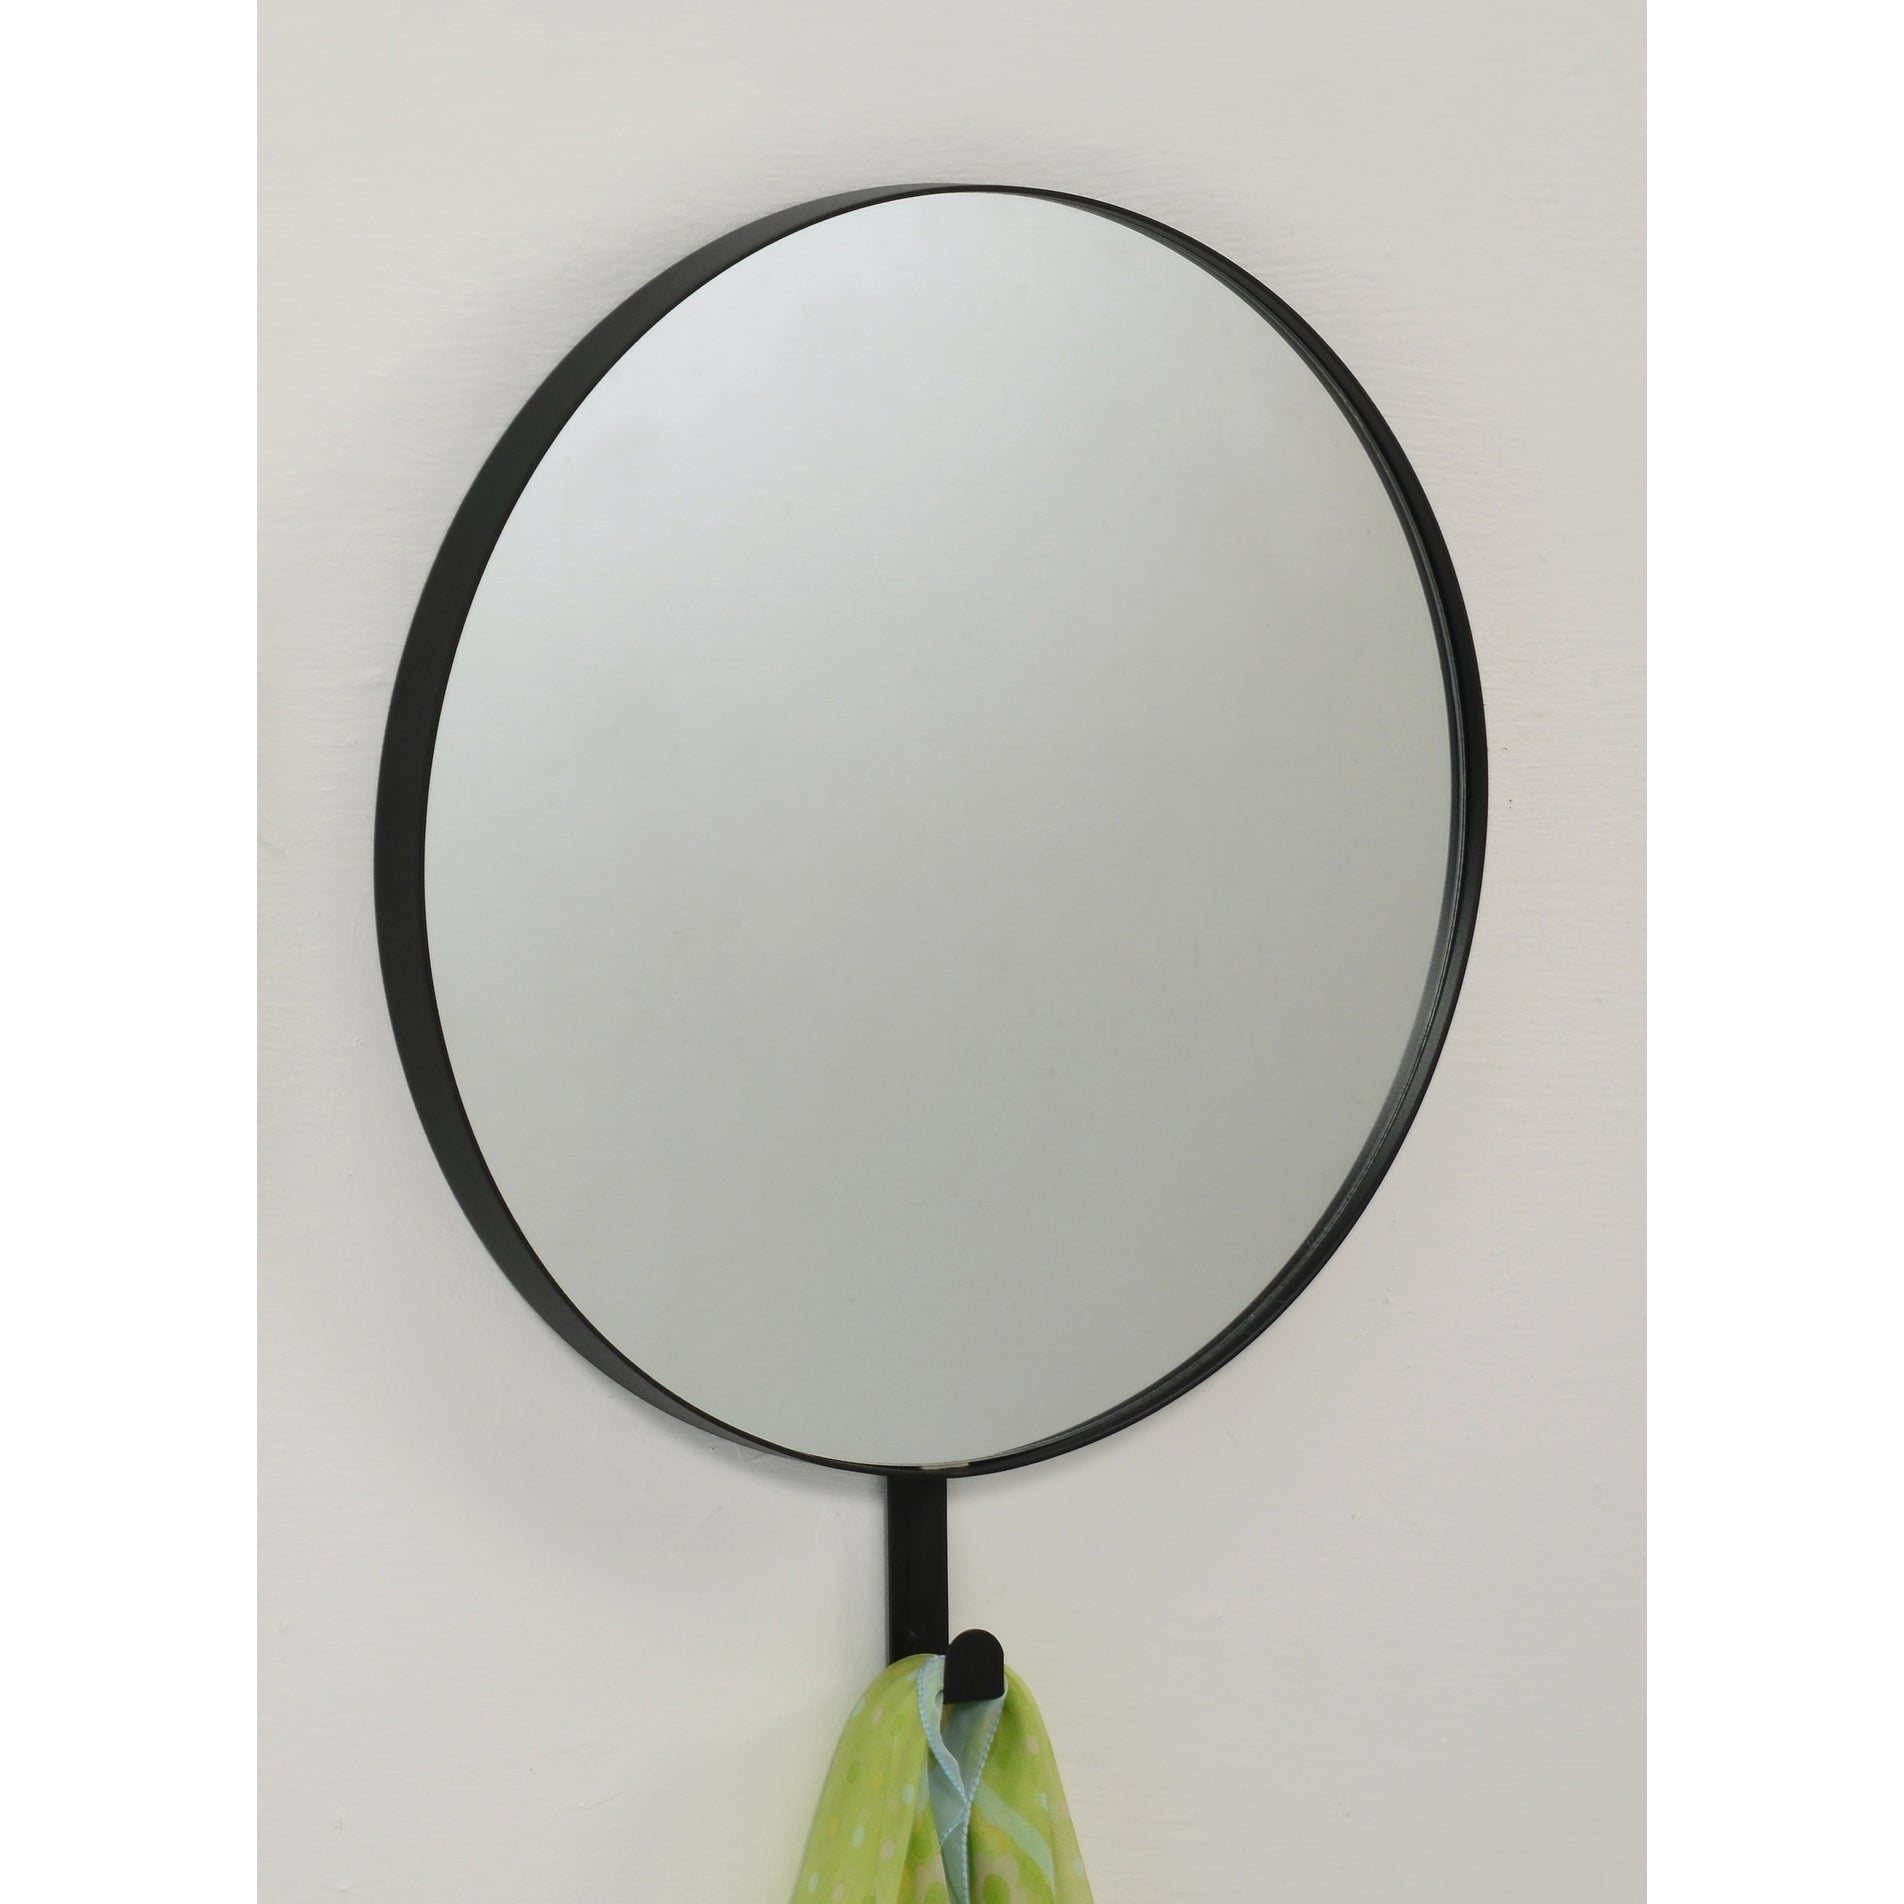 Well Known Contemporary Wall Mirror Black & Round – Black With Regard To Contemporary Wall Mirrors (View 9 of 20)